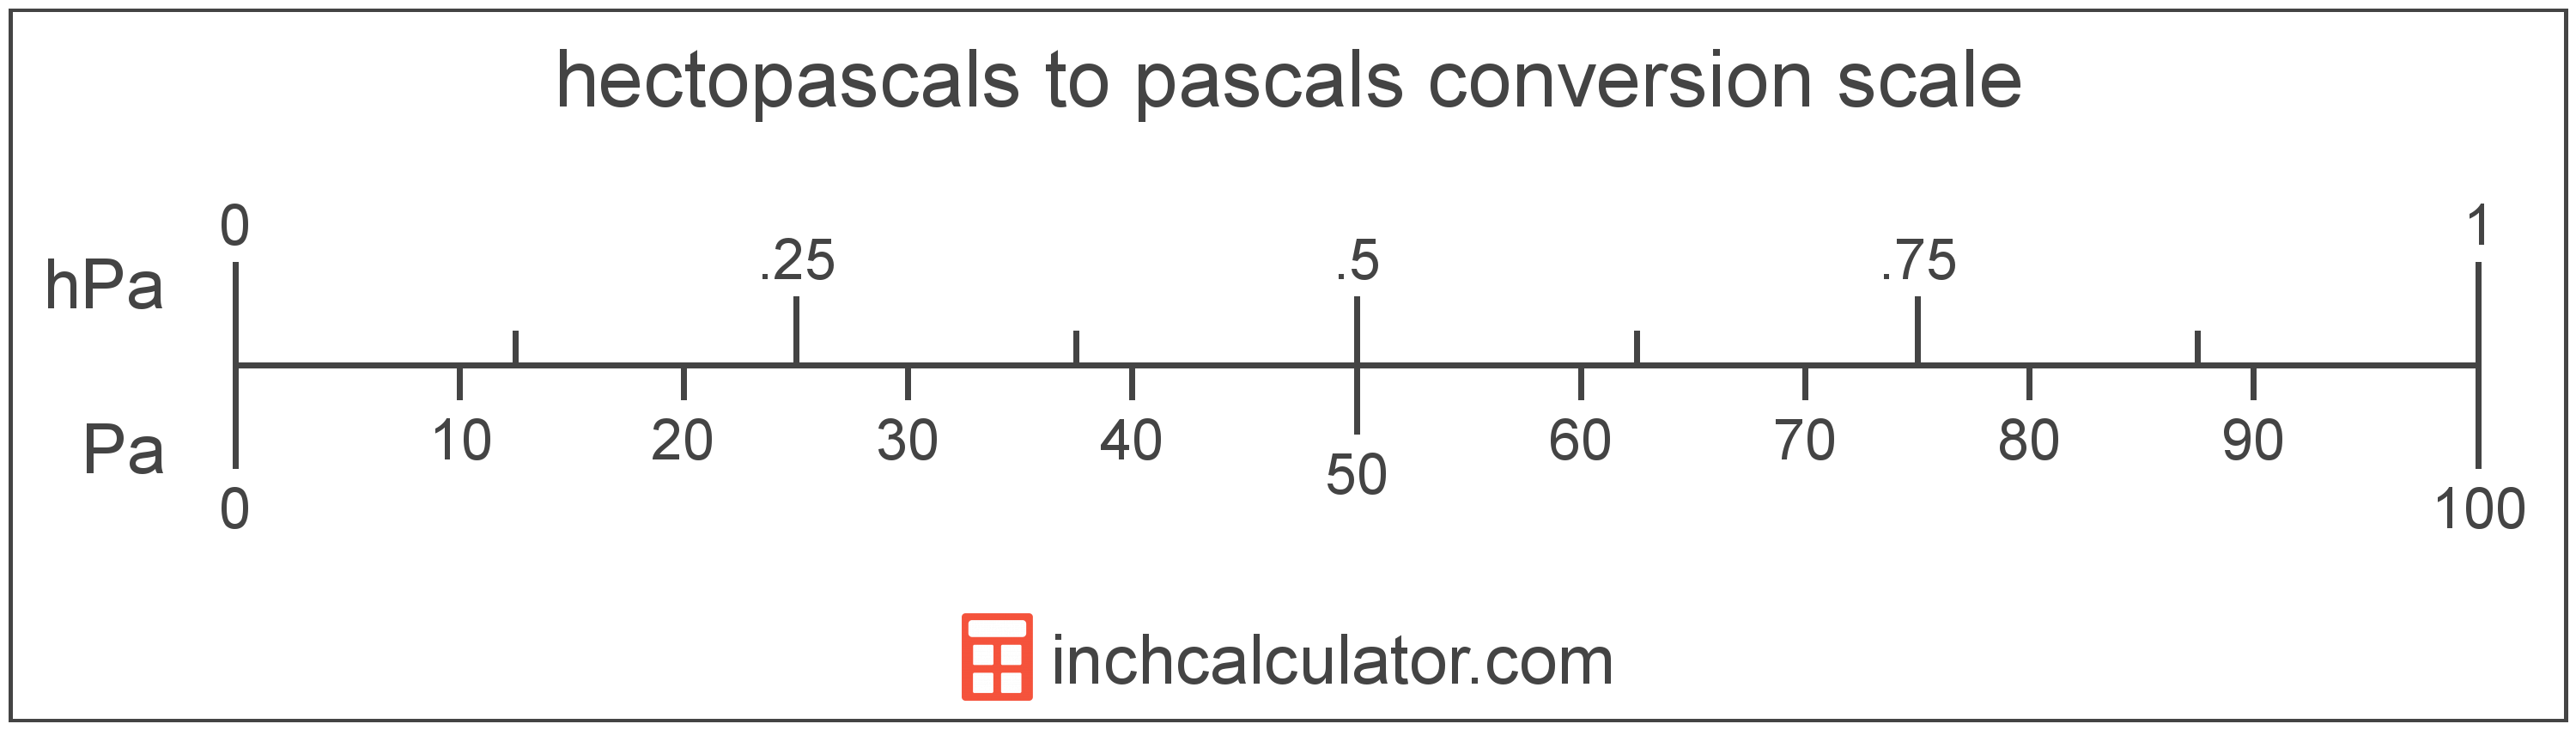 conversion scale showing pascals and equivalent hectopascals pressure values